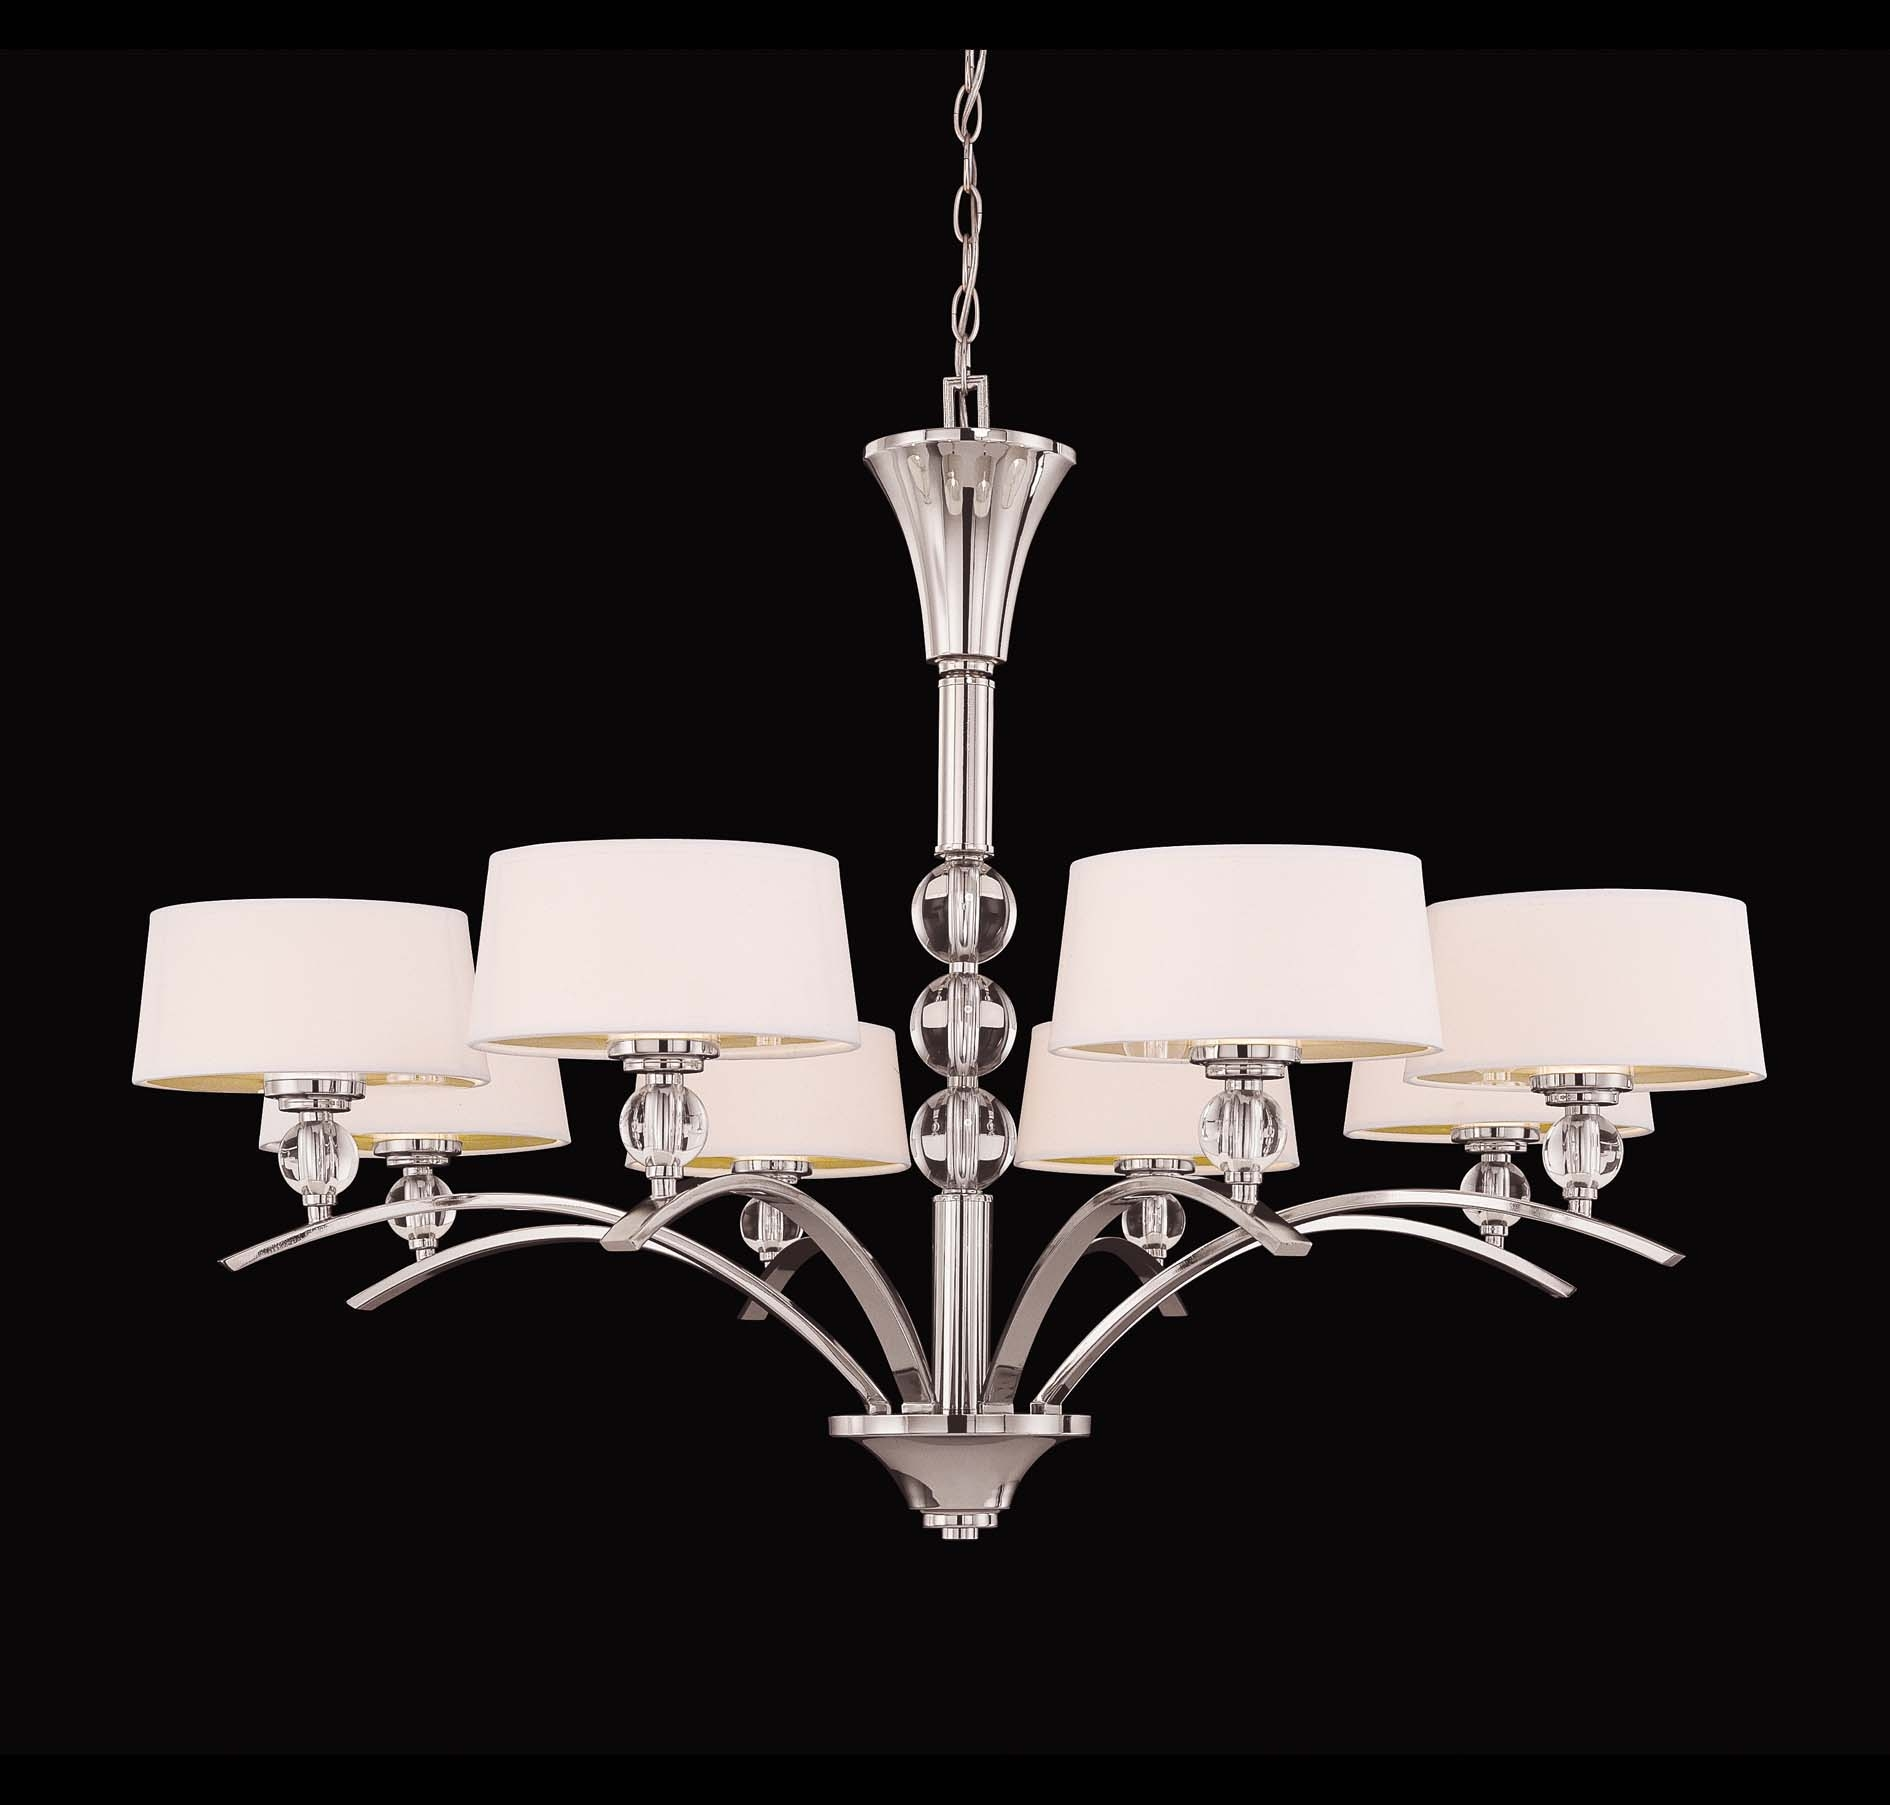 Savoy House Chandelier Cool For Inspirational Home Designing With For Savoy House Chandeliers (Image 24 of 25)